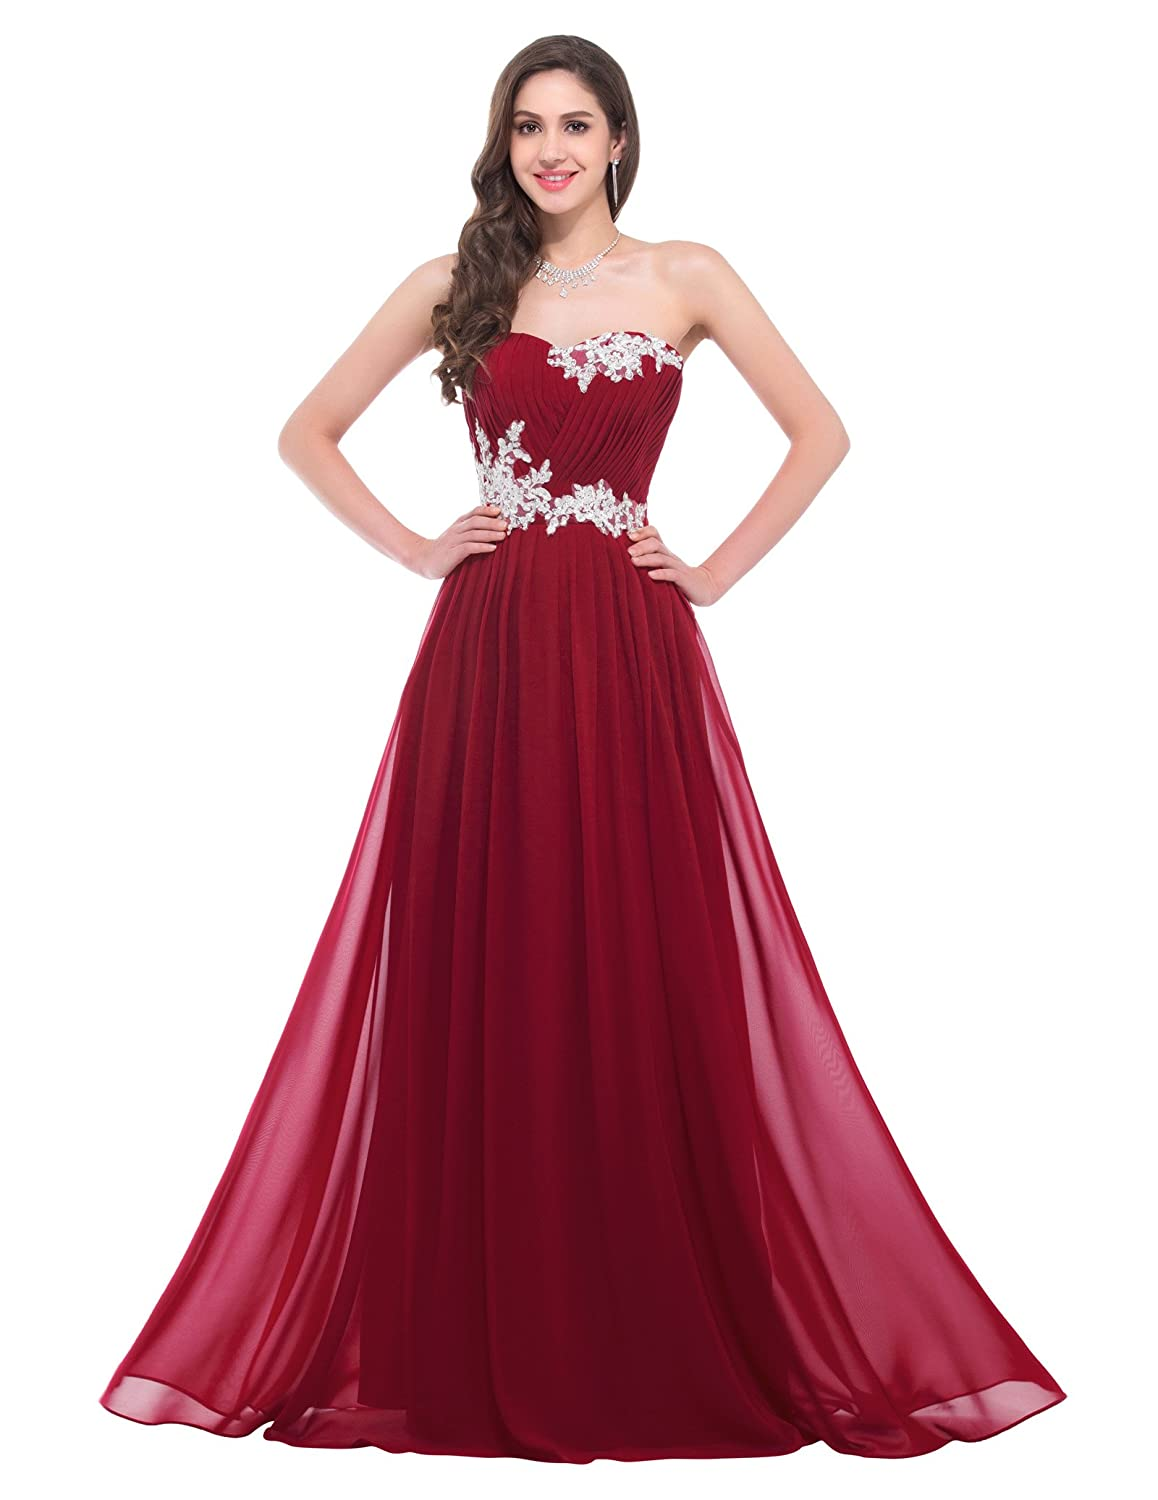 Amazon.com: GRACE KARIN Strapless Long Evening Dress with Appliques ...